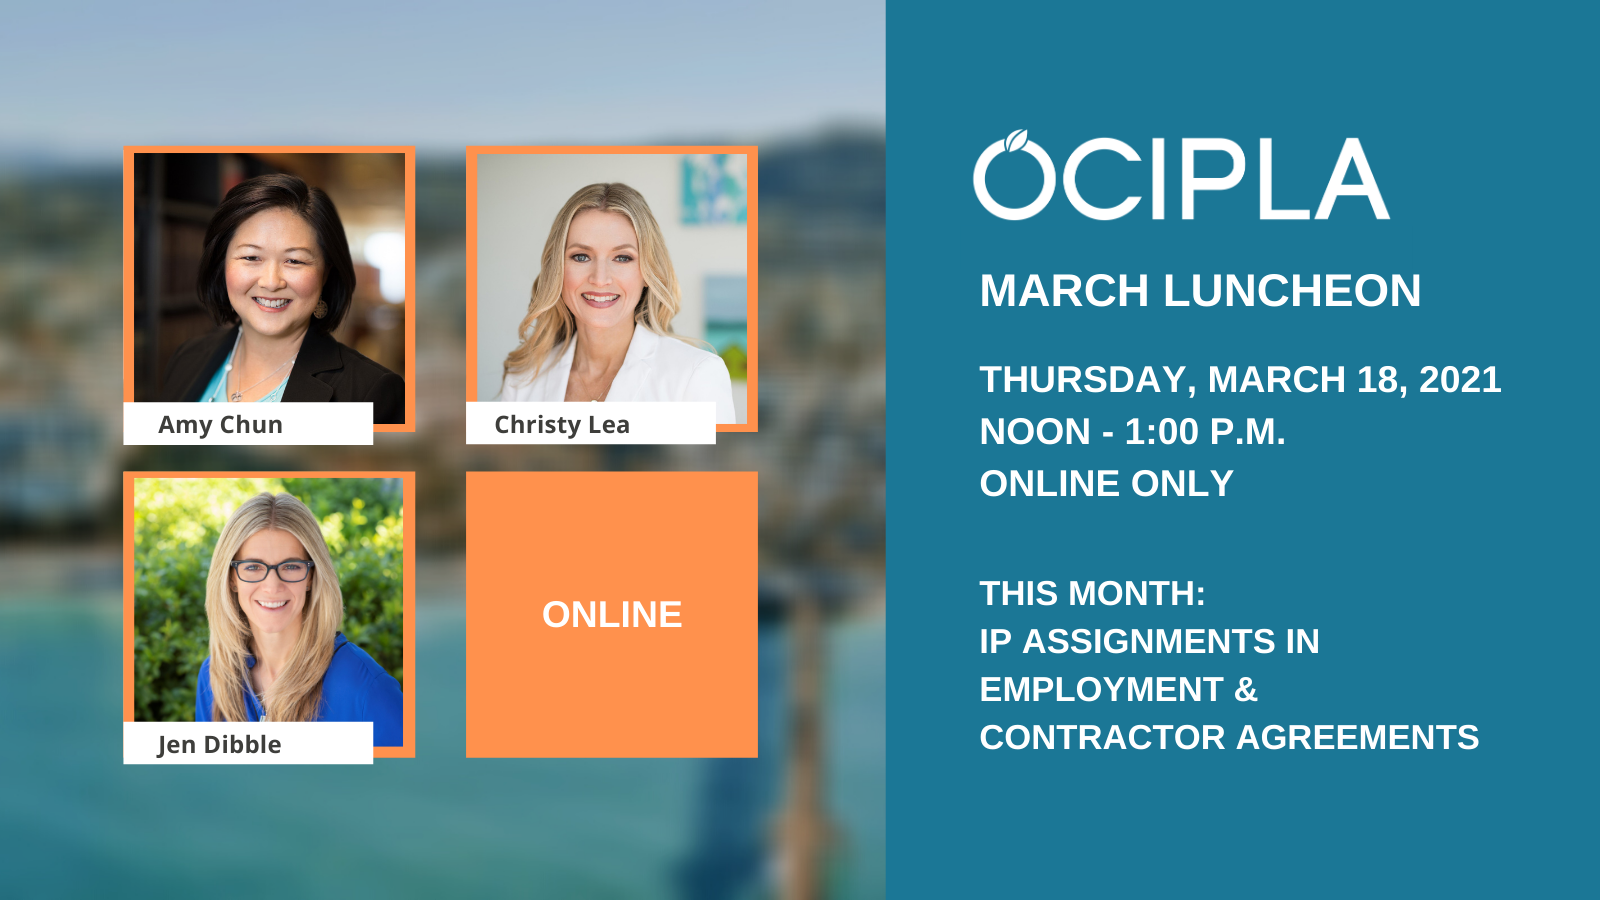 OCIPLA March Luncheon - Thursday, March 18, 2021, Noon - 1:00 PM - Online